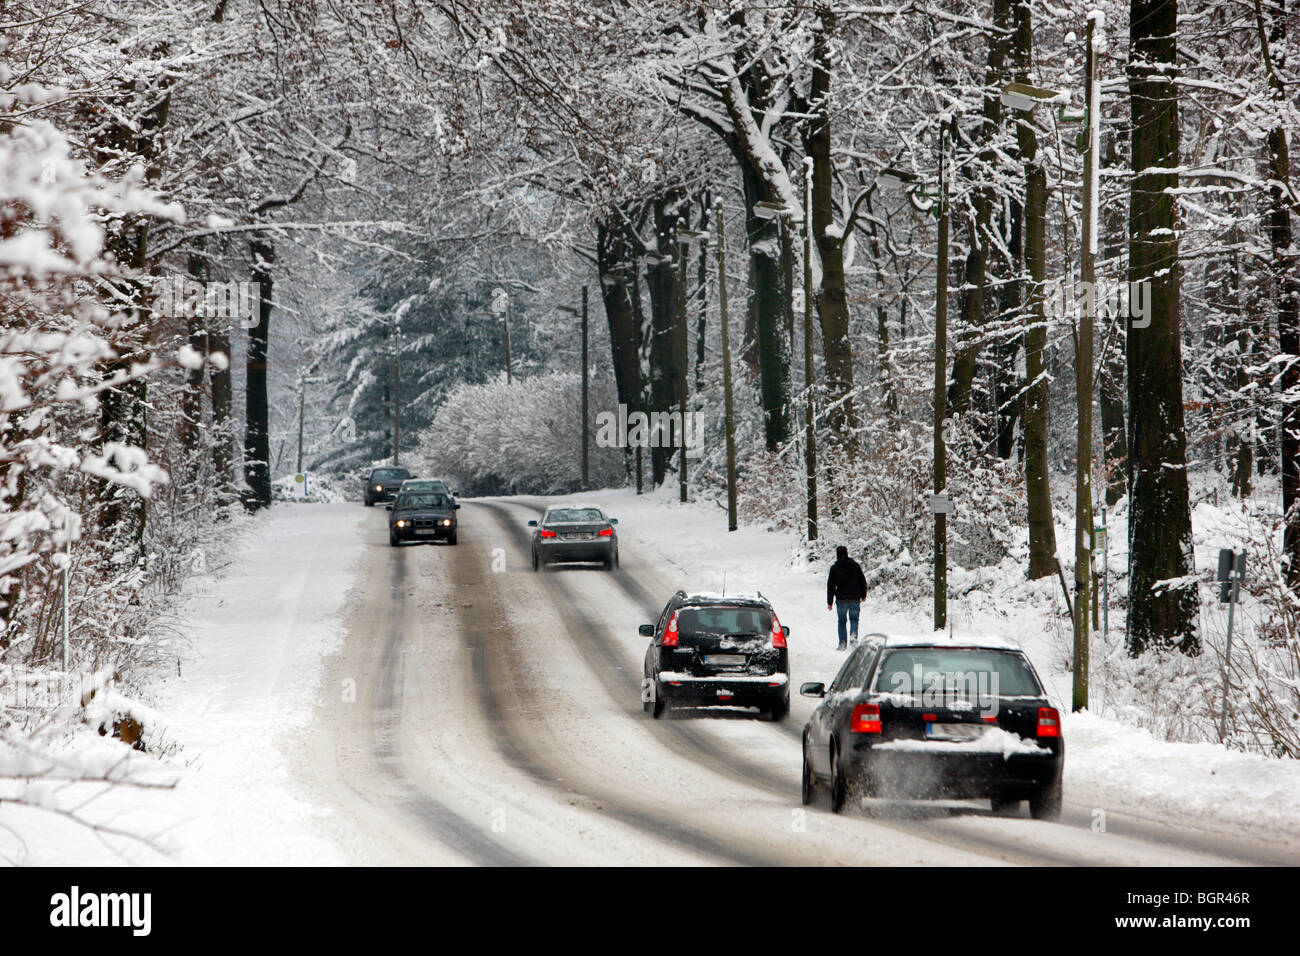 Country road in winter, snow conditions, Germany - Stock Image